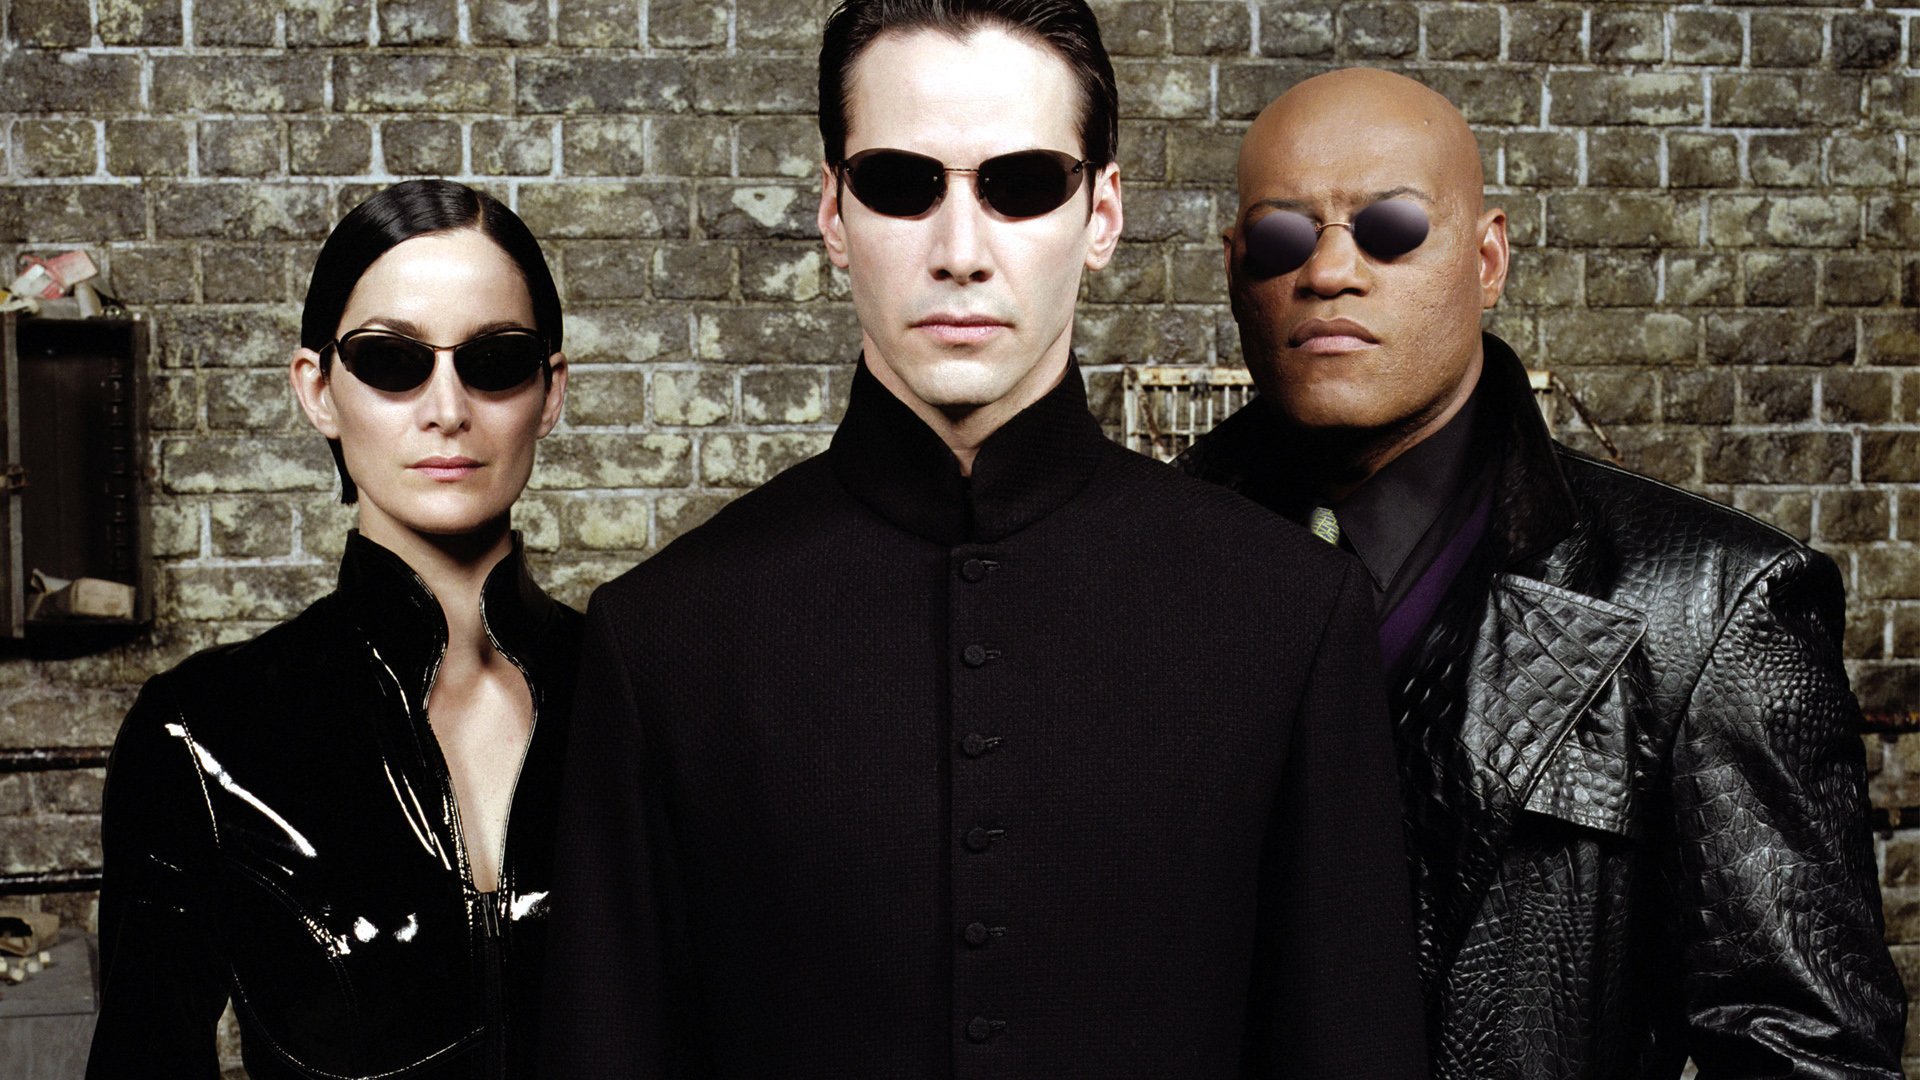 The original cast of the Matrix.